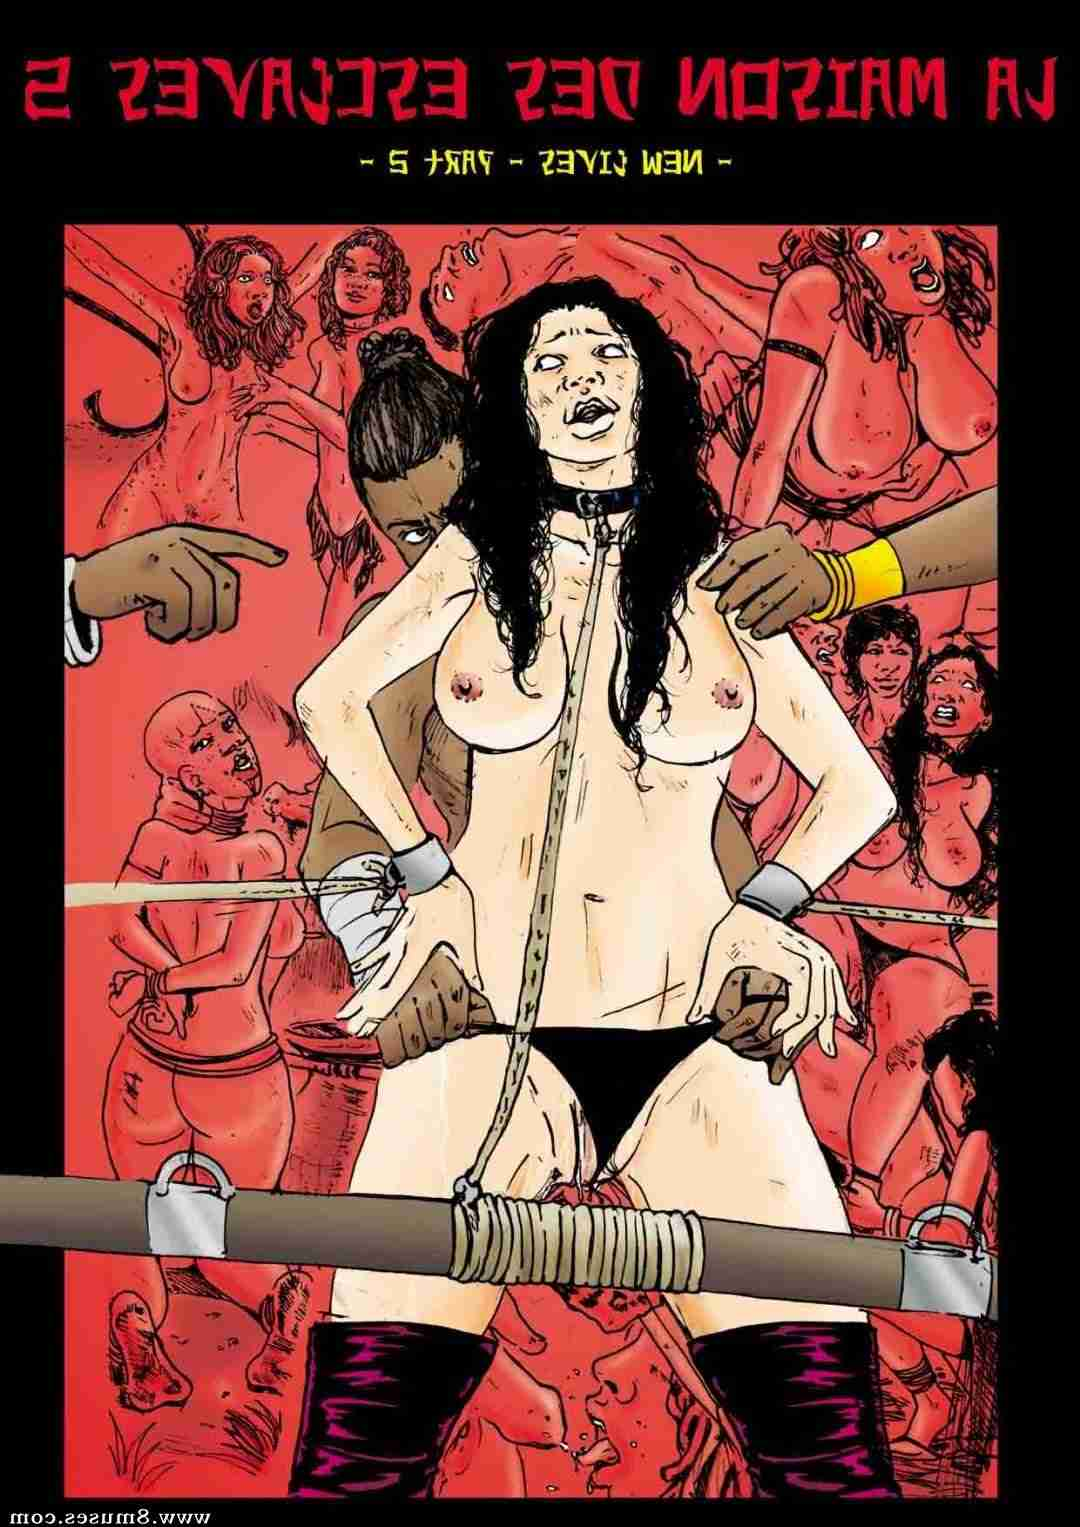 StrapAndStrip-Pervish-Comics/Maison-Des-Esclaves Maison_Des_Esclaves__8muses_-_Sex_and_Porn_Comics_5.jpg